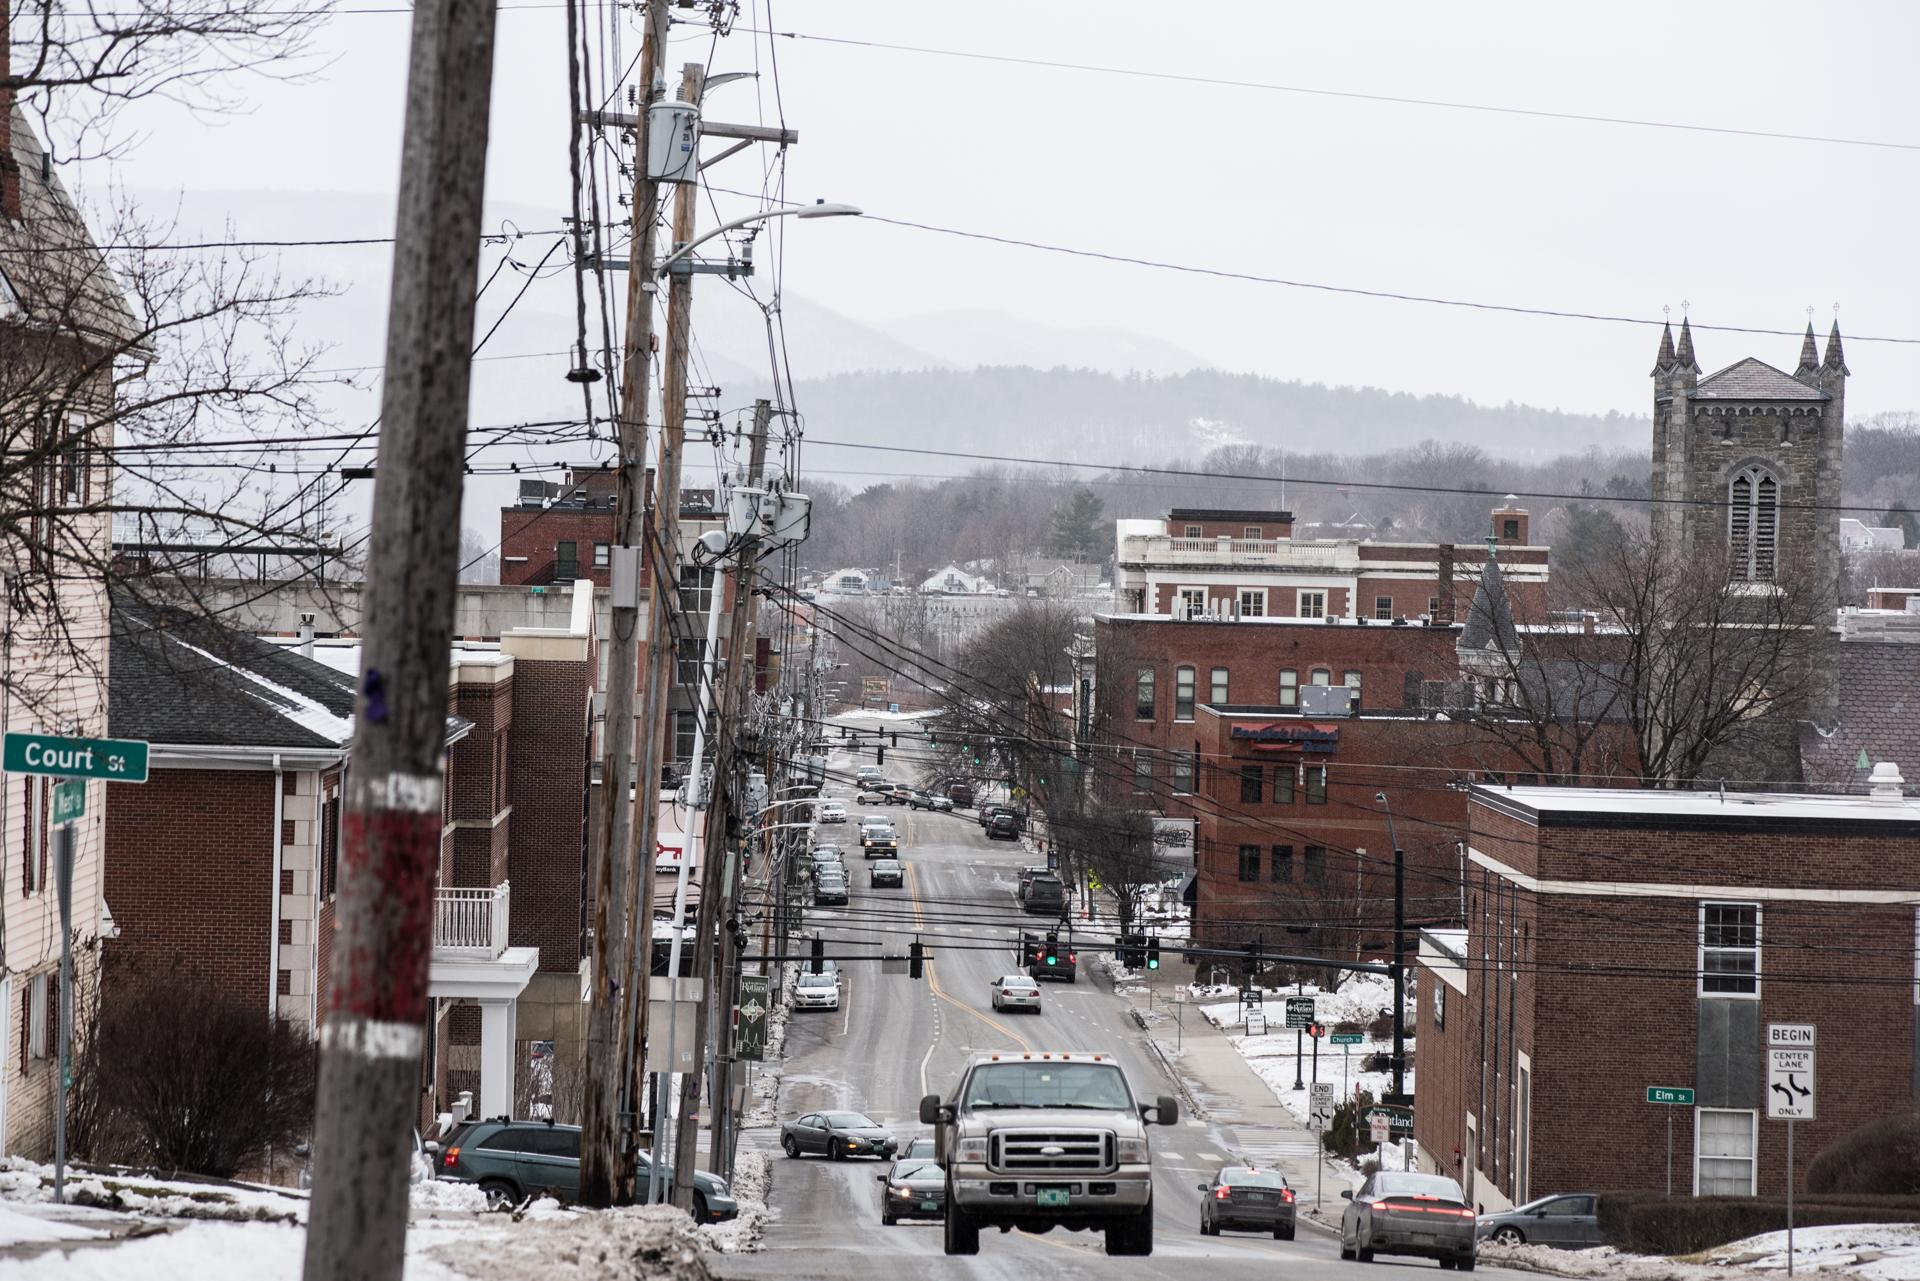 Officials in Rutland, Vt., had planned to resettle about 100 refugees in the coming year.